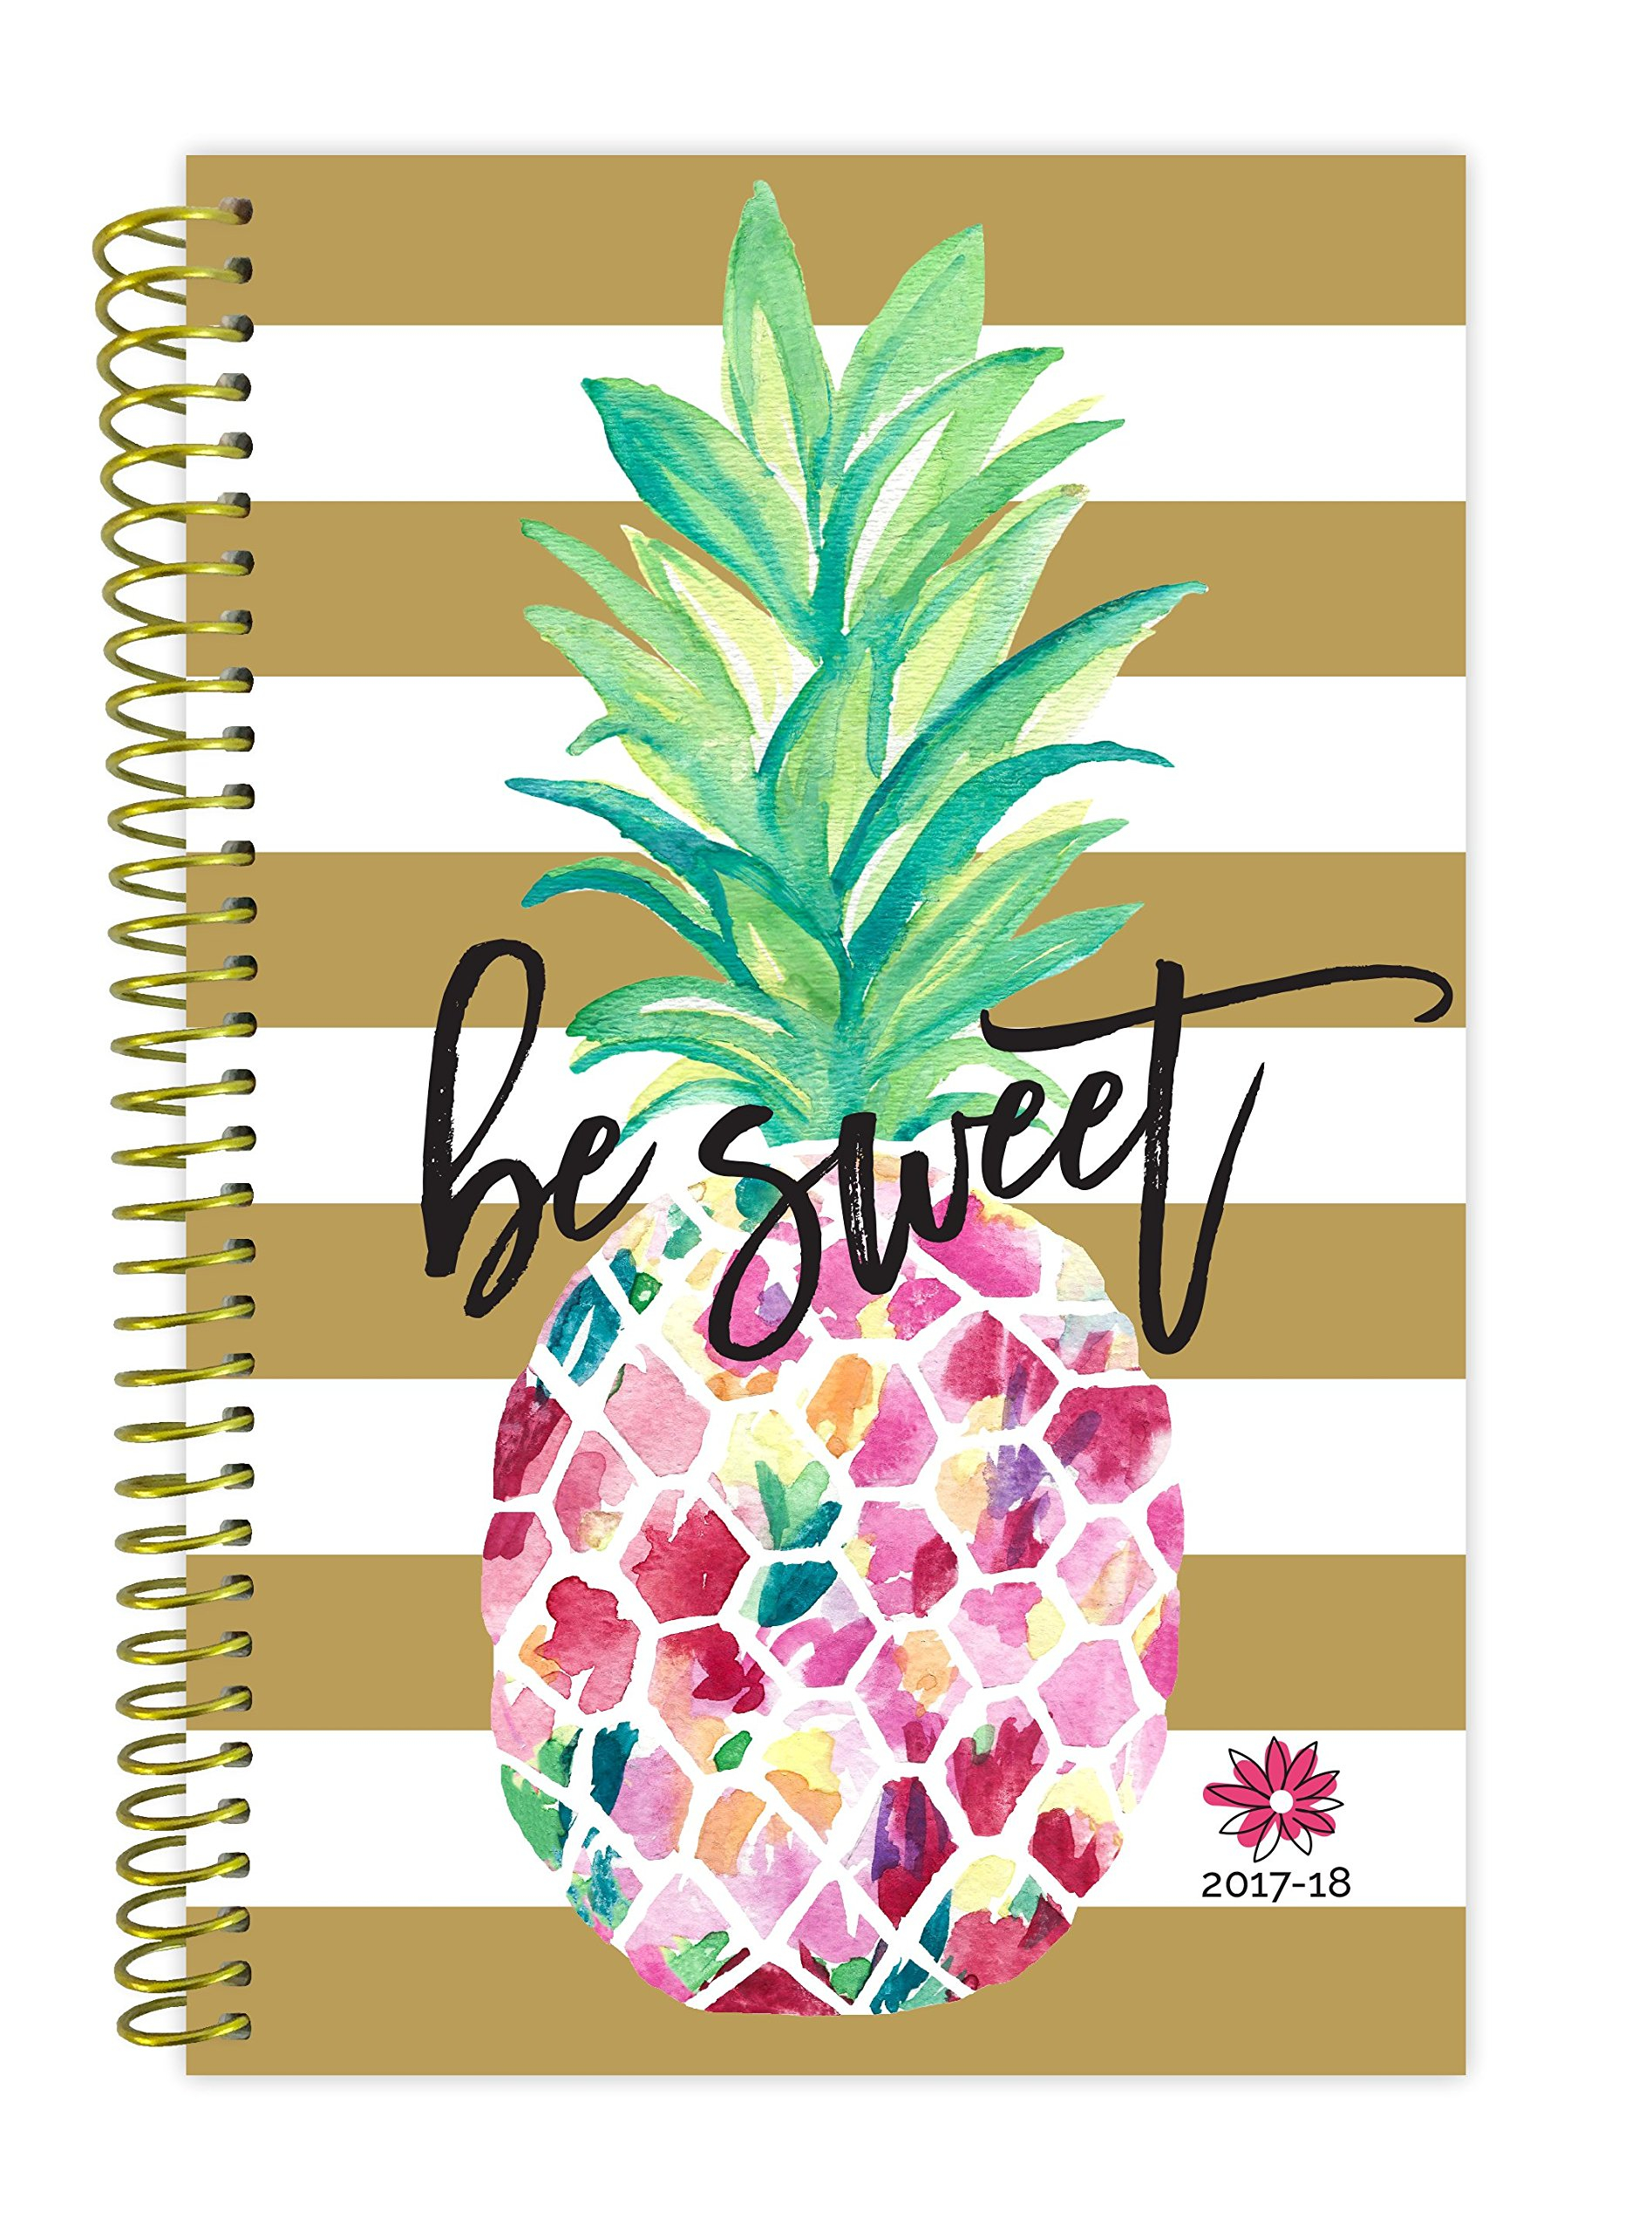 bloom daily planners 2017-18 Academic Year Daily Planner - Passion/Goal Organizer - Monthly and Weekly Datebook and Calendar - August 2017 - July 2018 - 6'' x 8.25'' - Pineapple